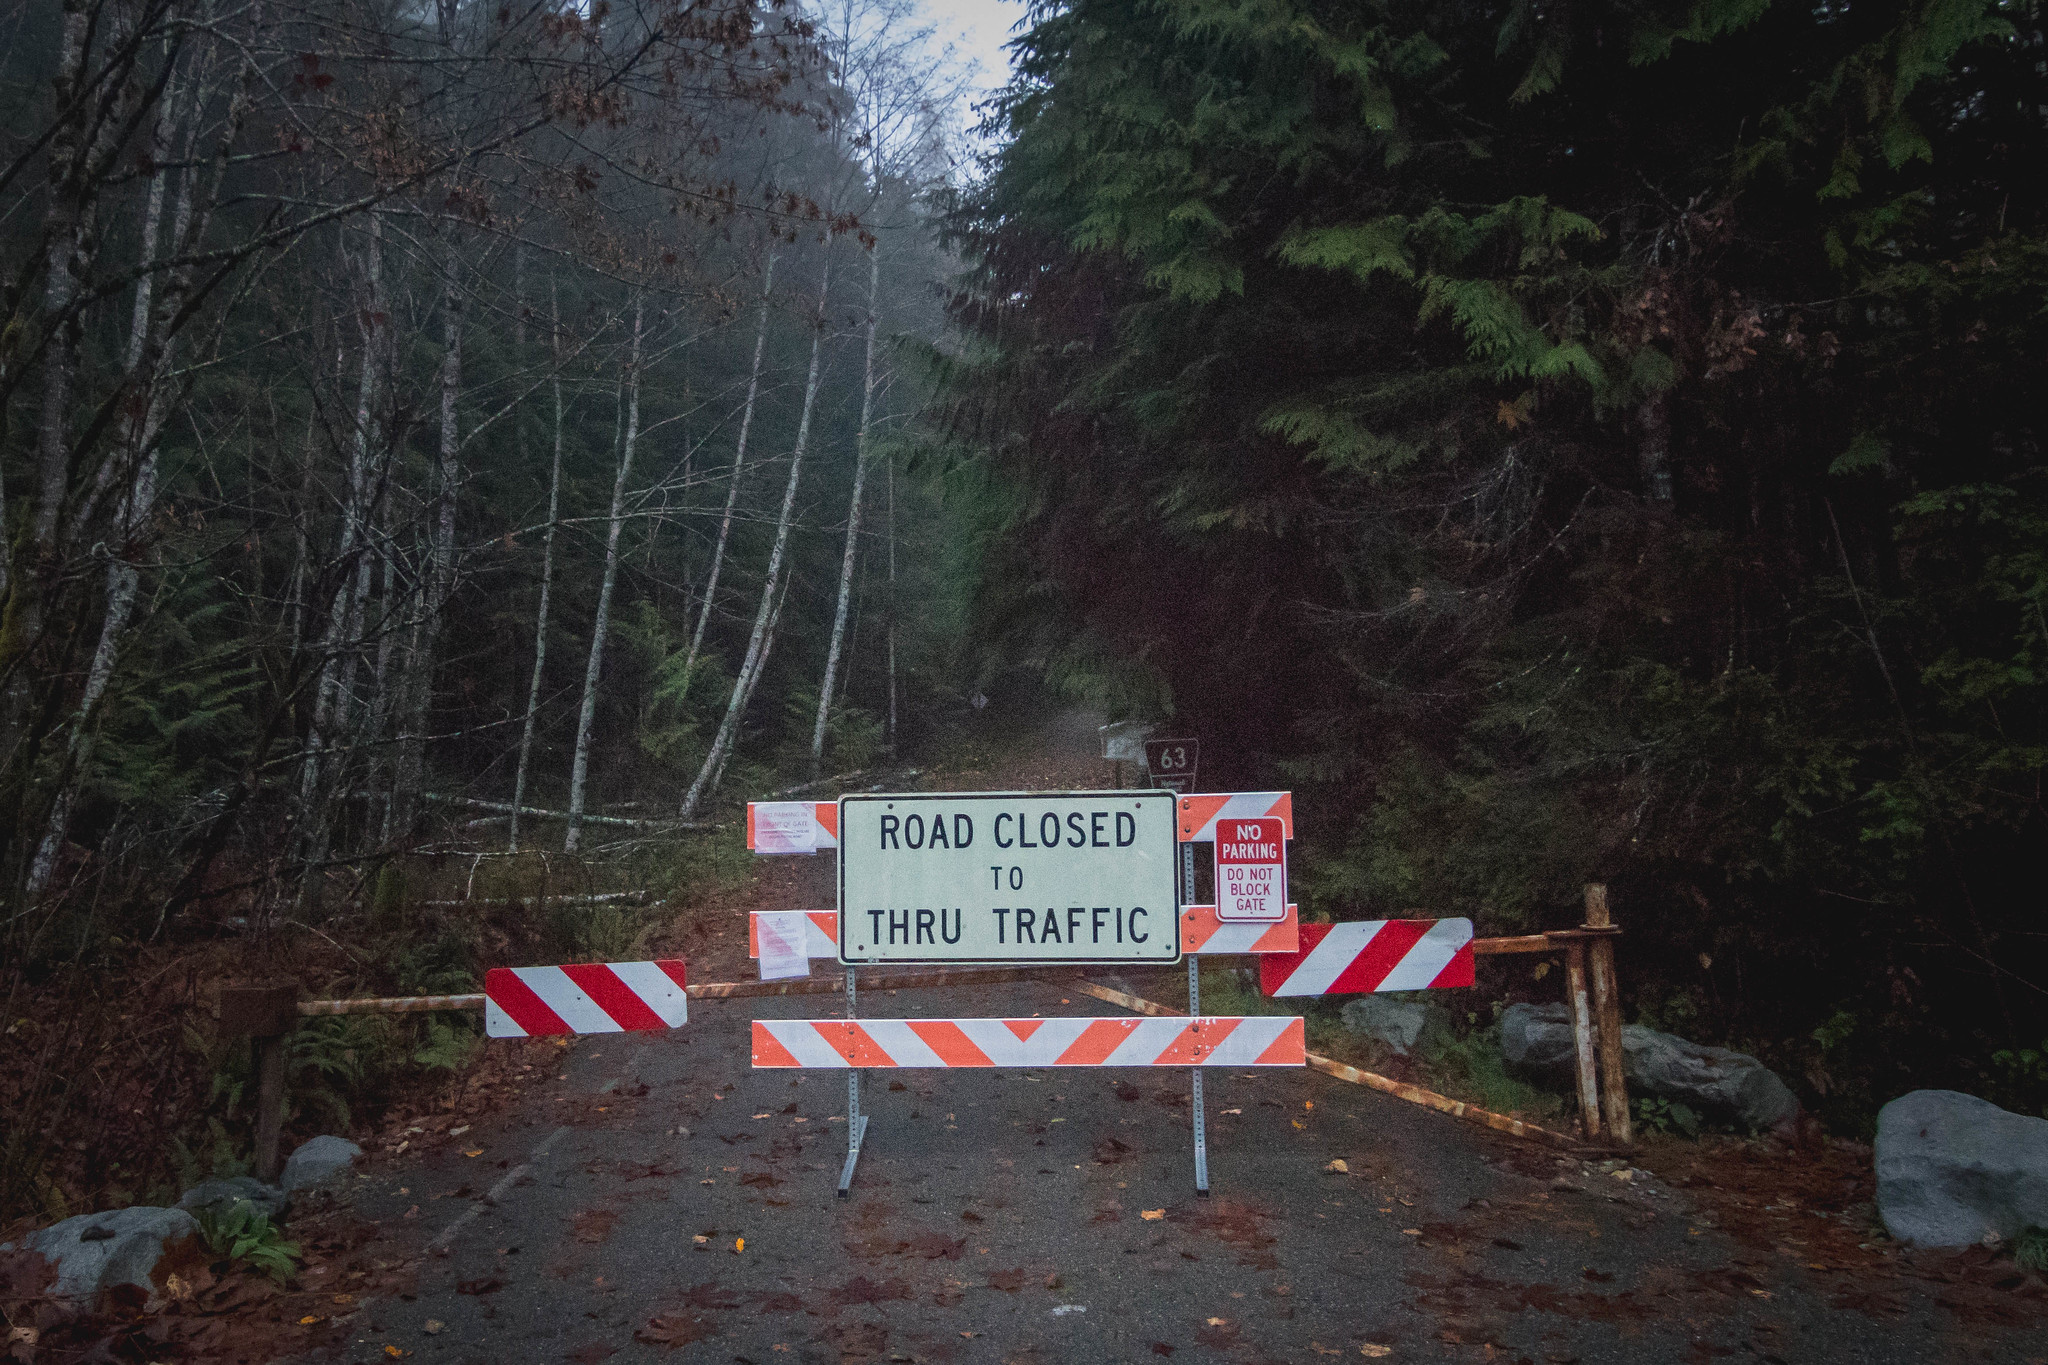 Road 63 closure